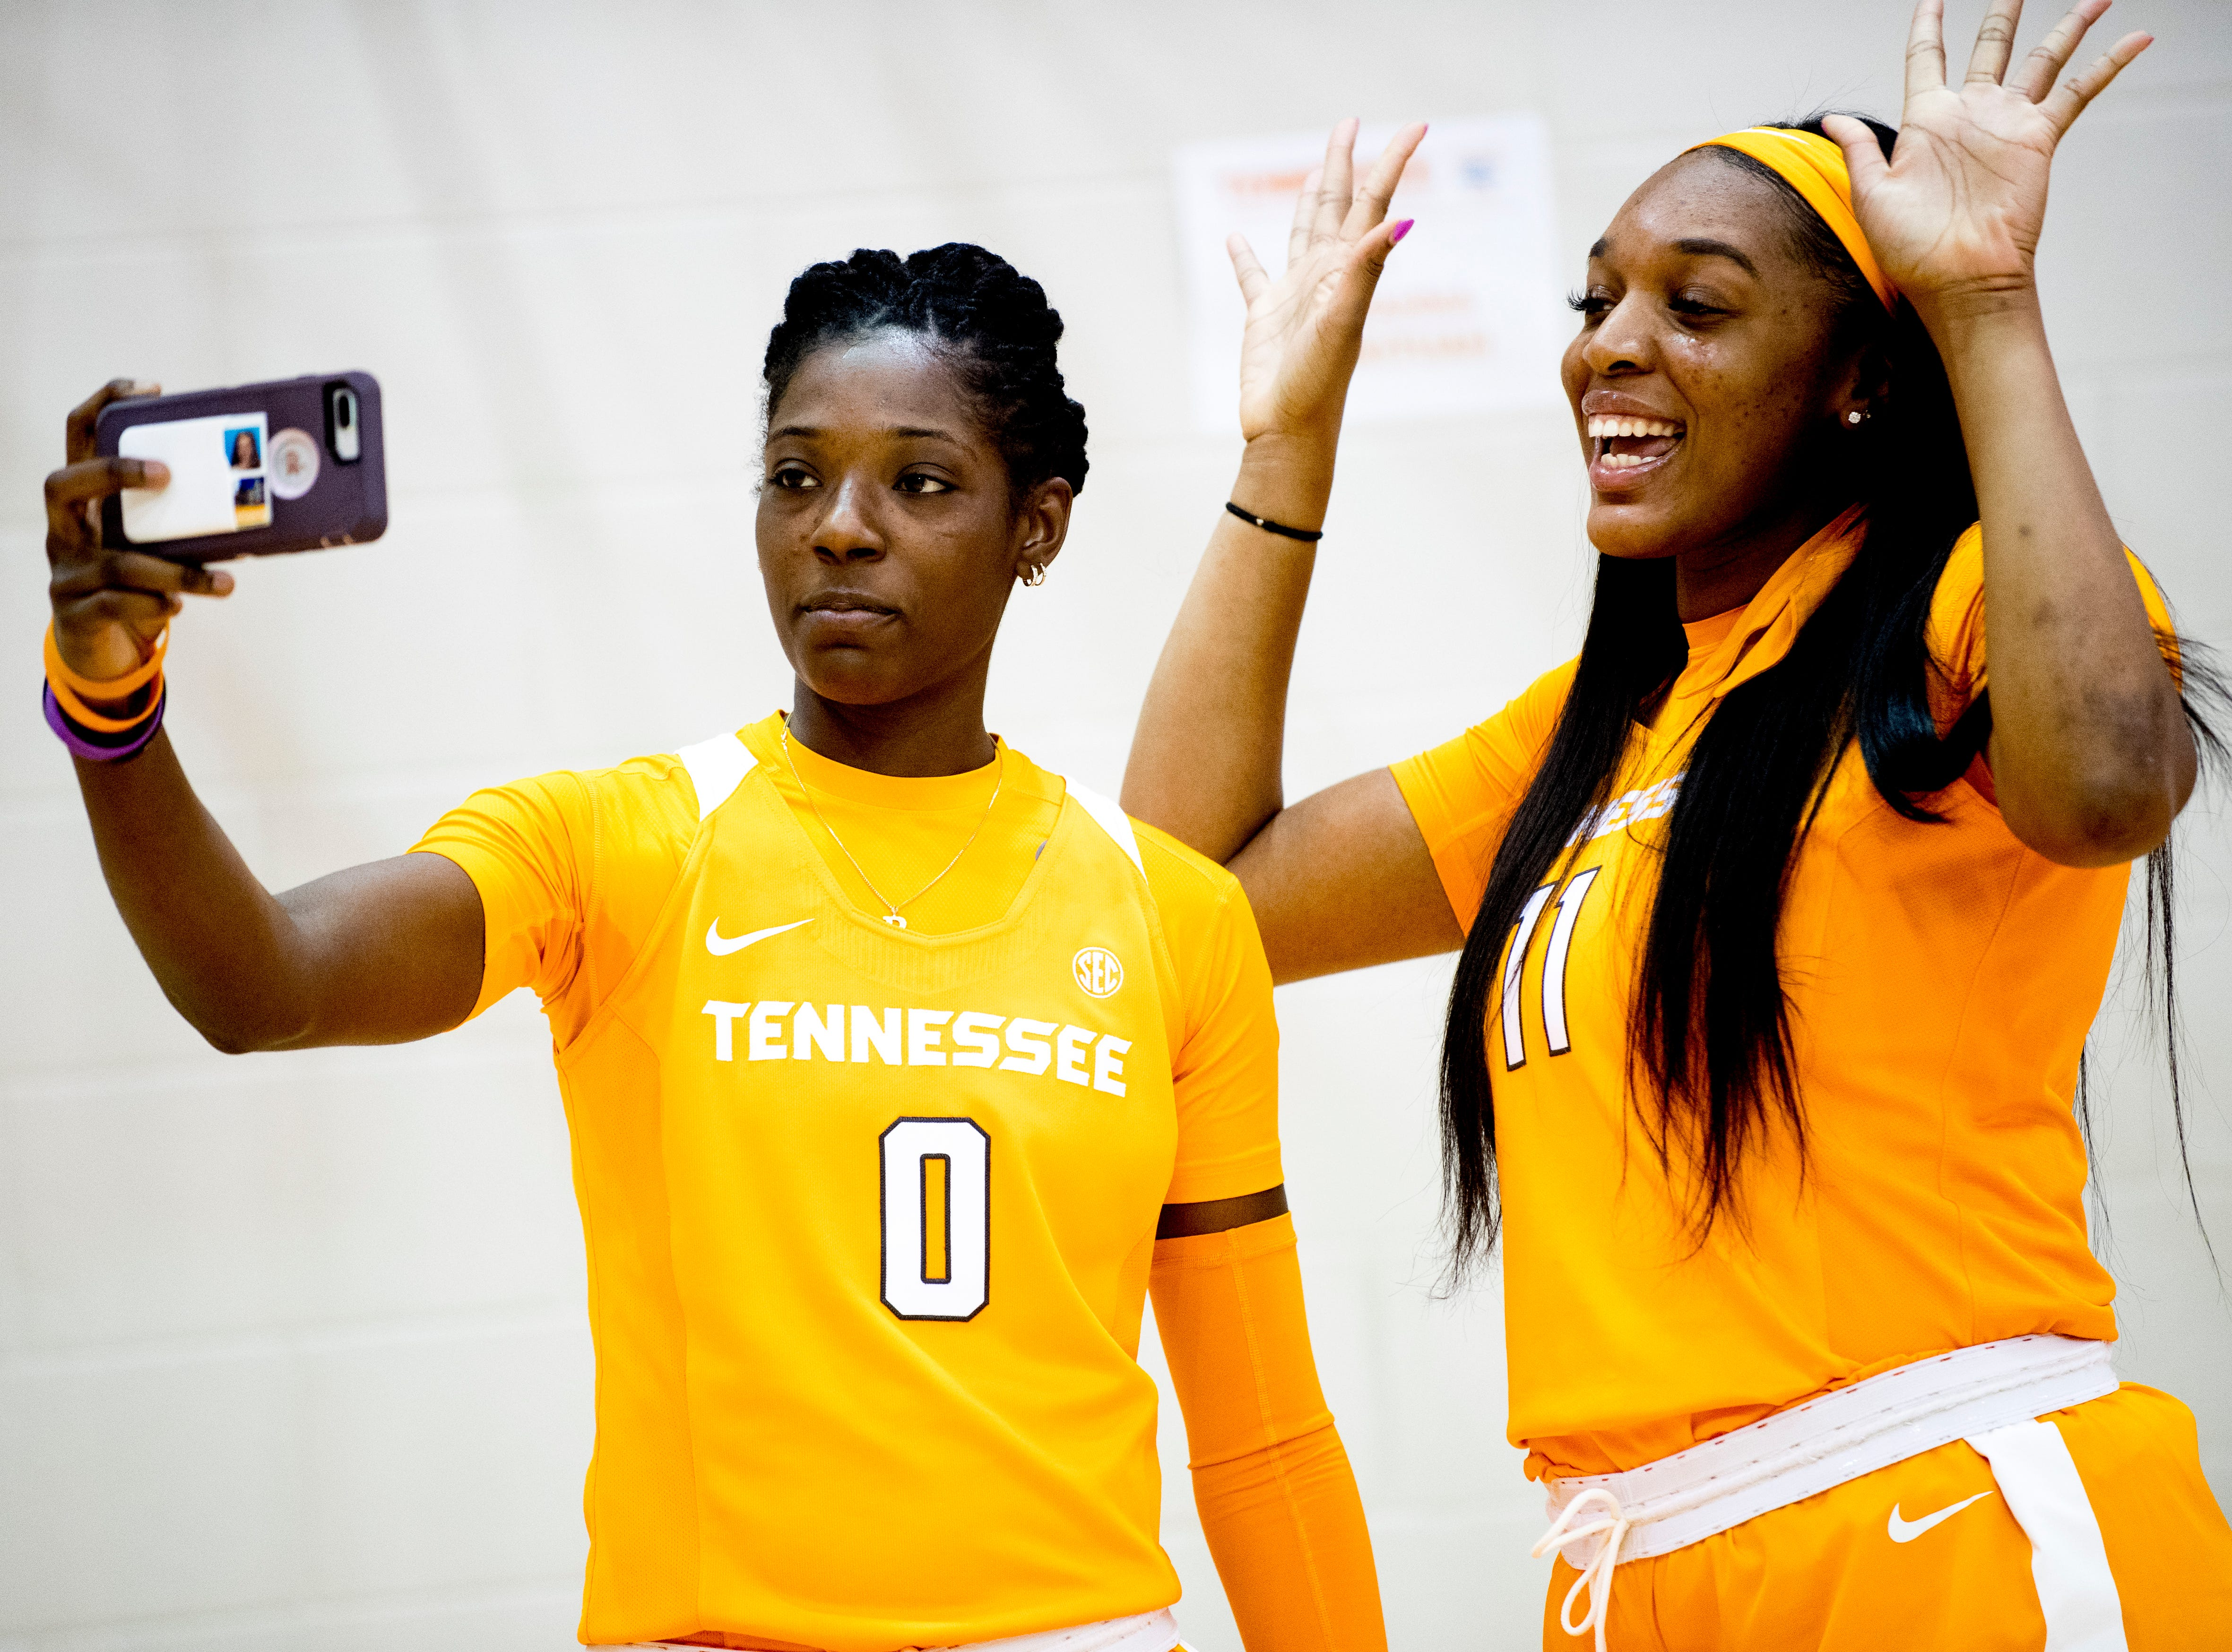 Rennia Davis (0) and Kasiyahna Kushkituah (11) take a selfie together during Tennessee Lady Vols Media Day at Pratt Pavilion in Knoxville, Tennessee on Thursday, October 25, 2018.